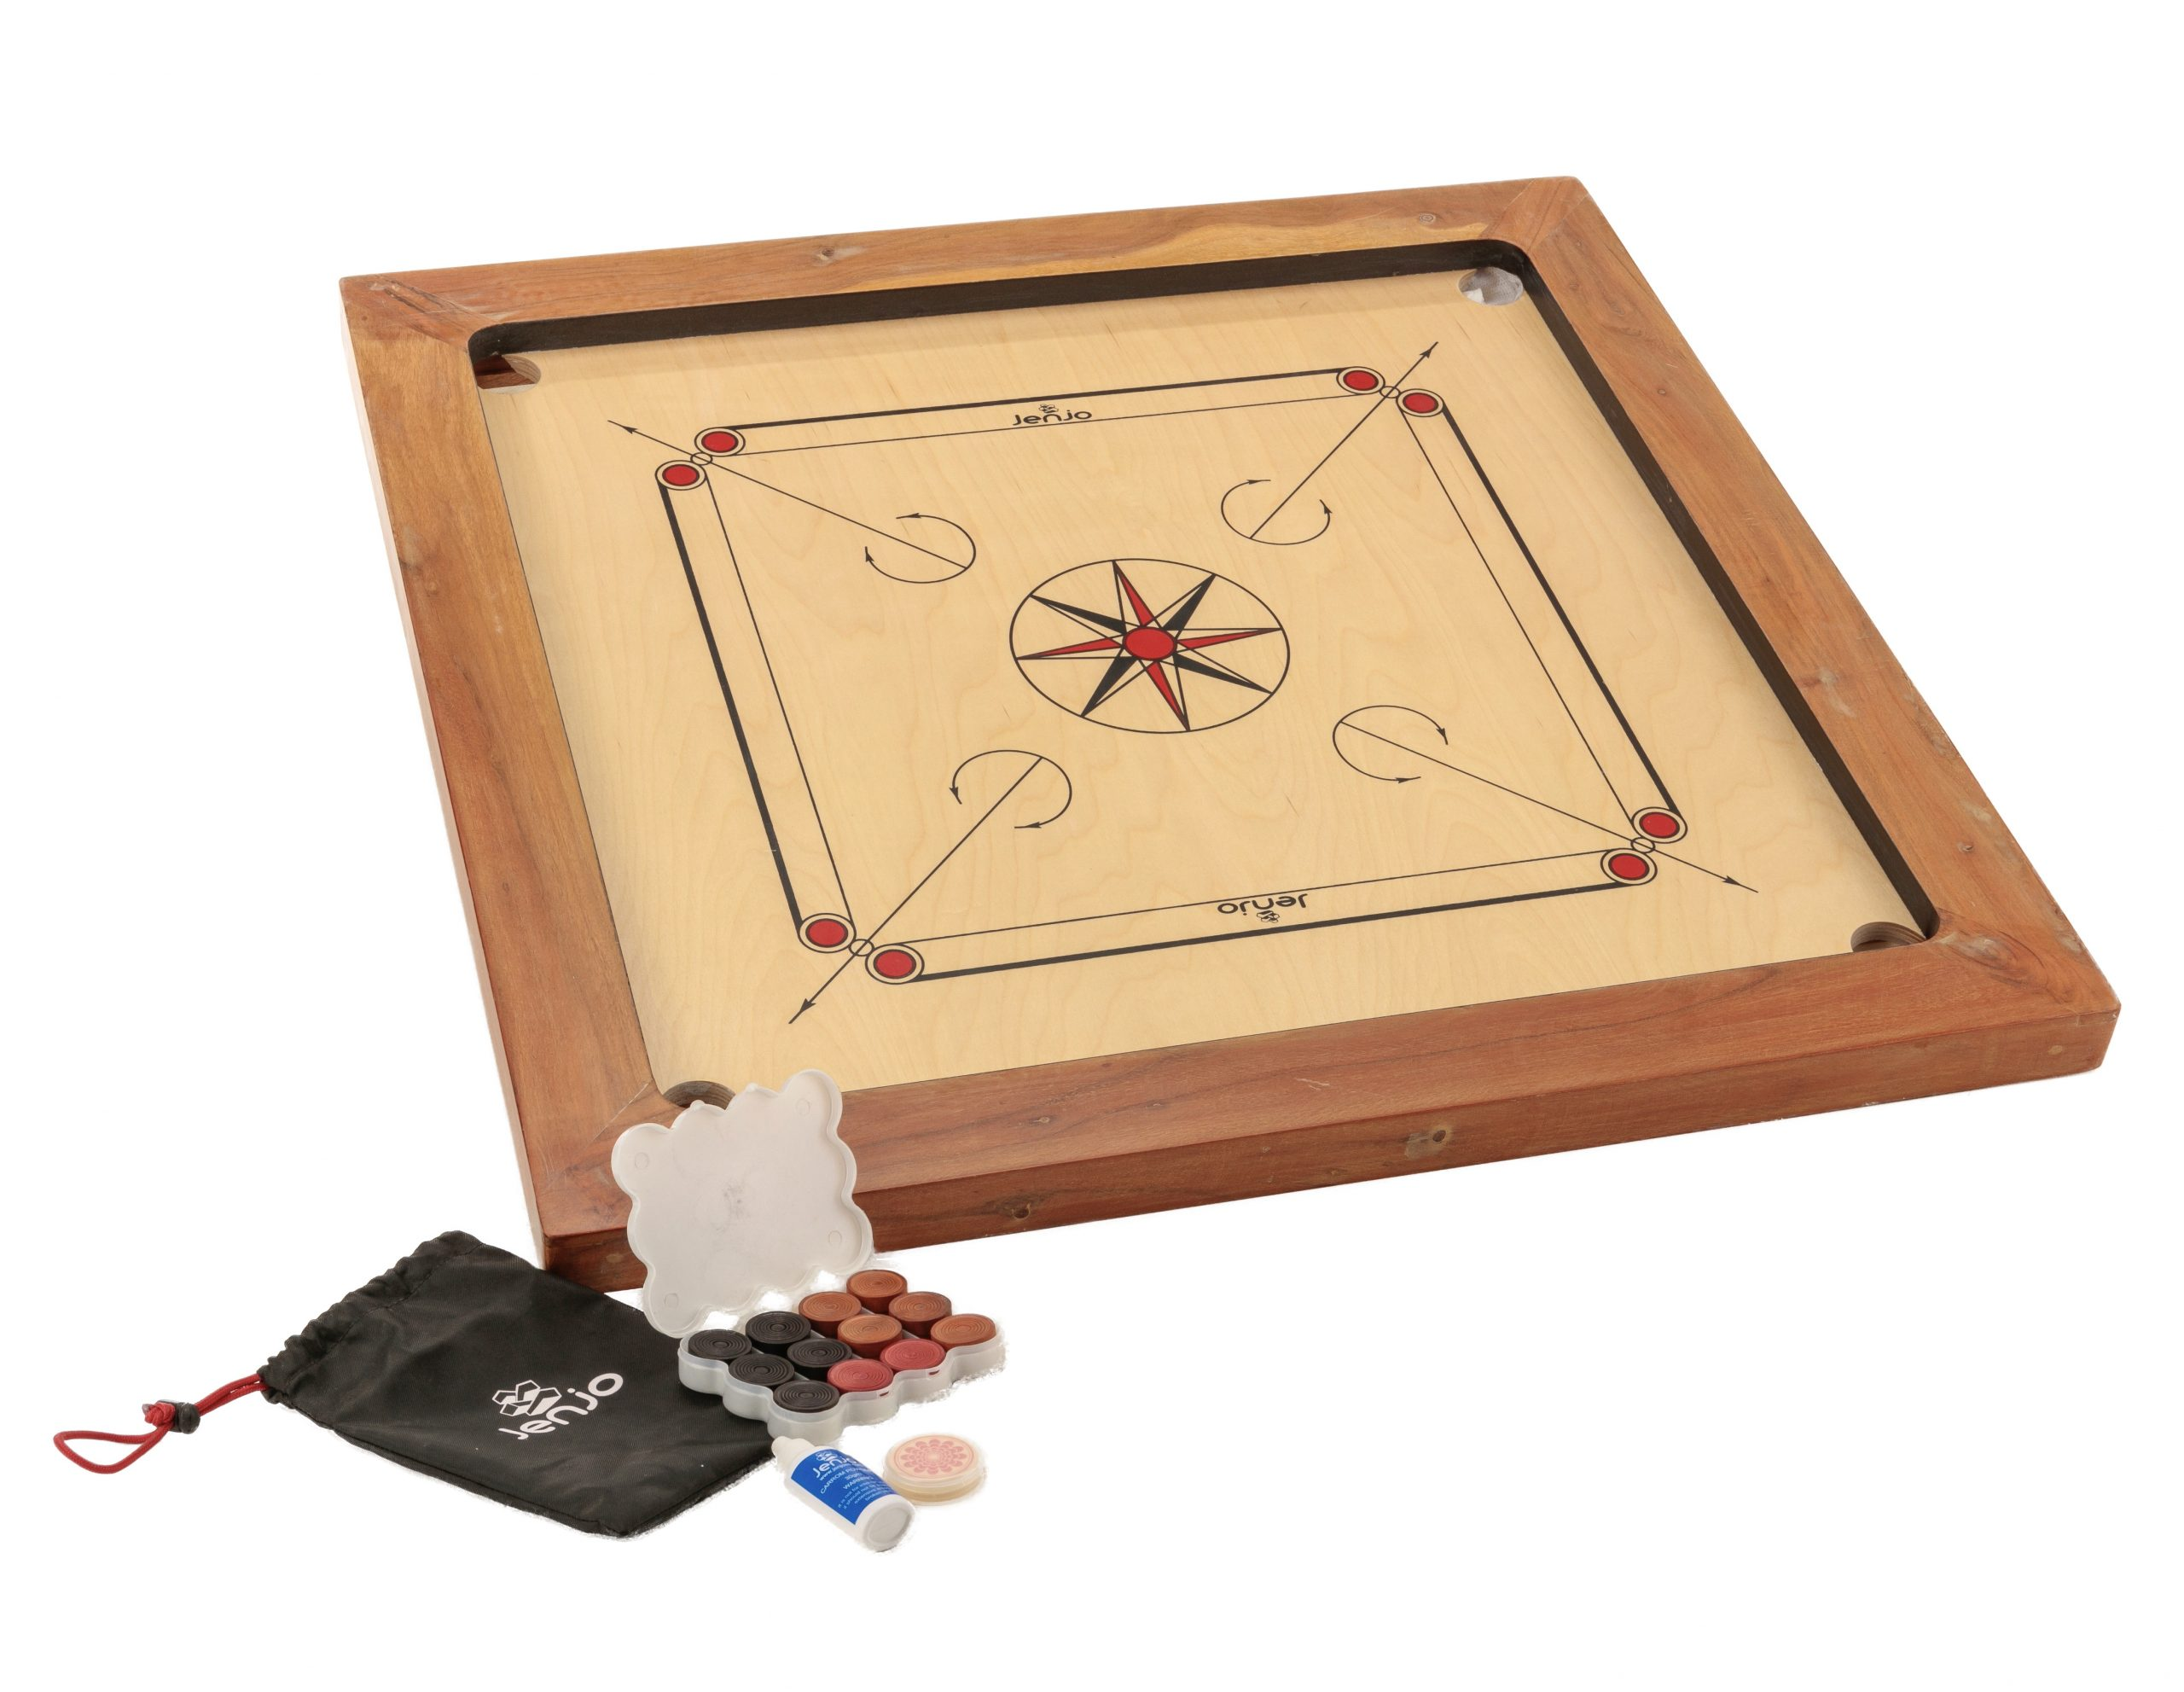 87x87cm Plywood Championship Carrom Board with 74x74cm Internal Playing Area